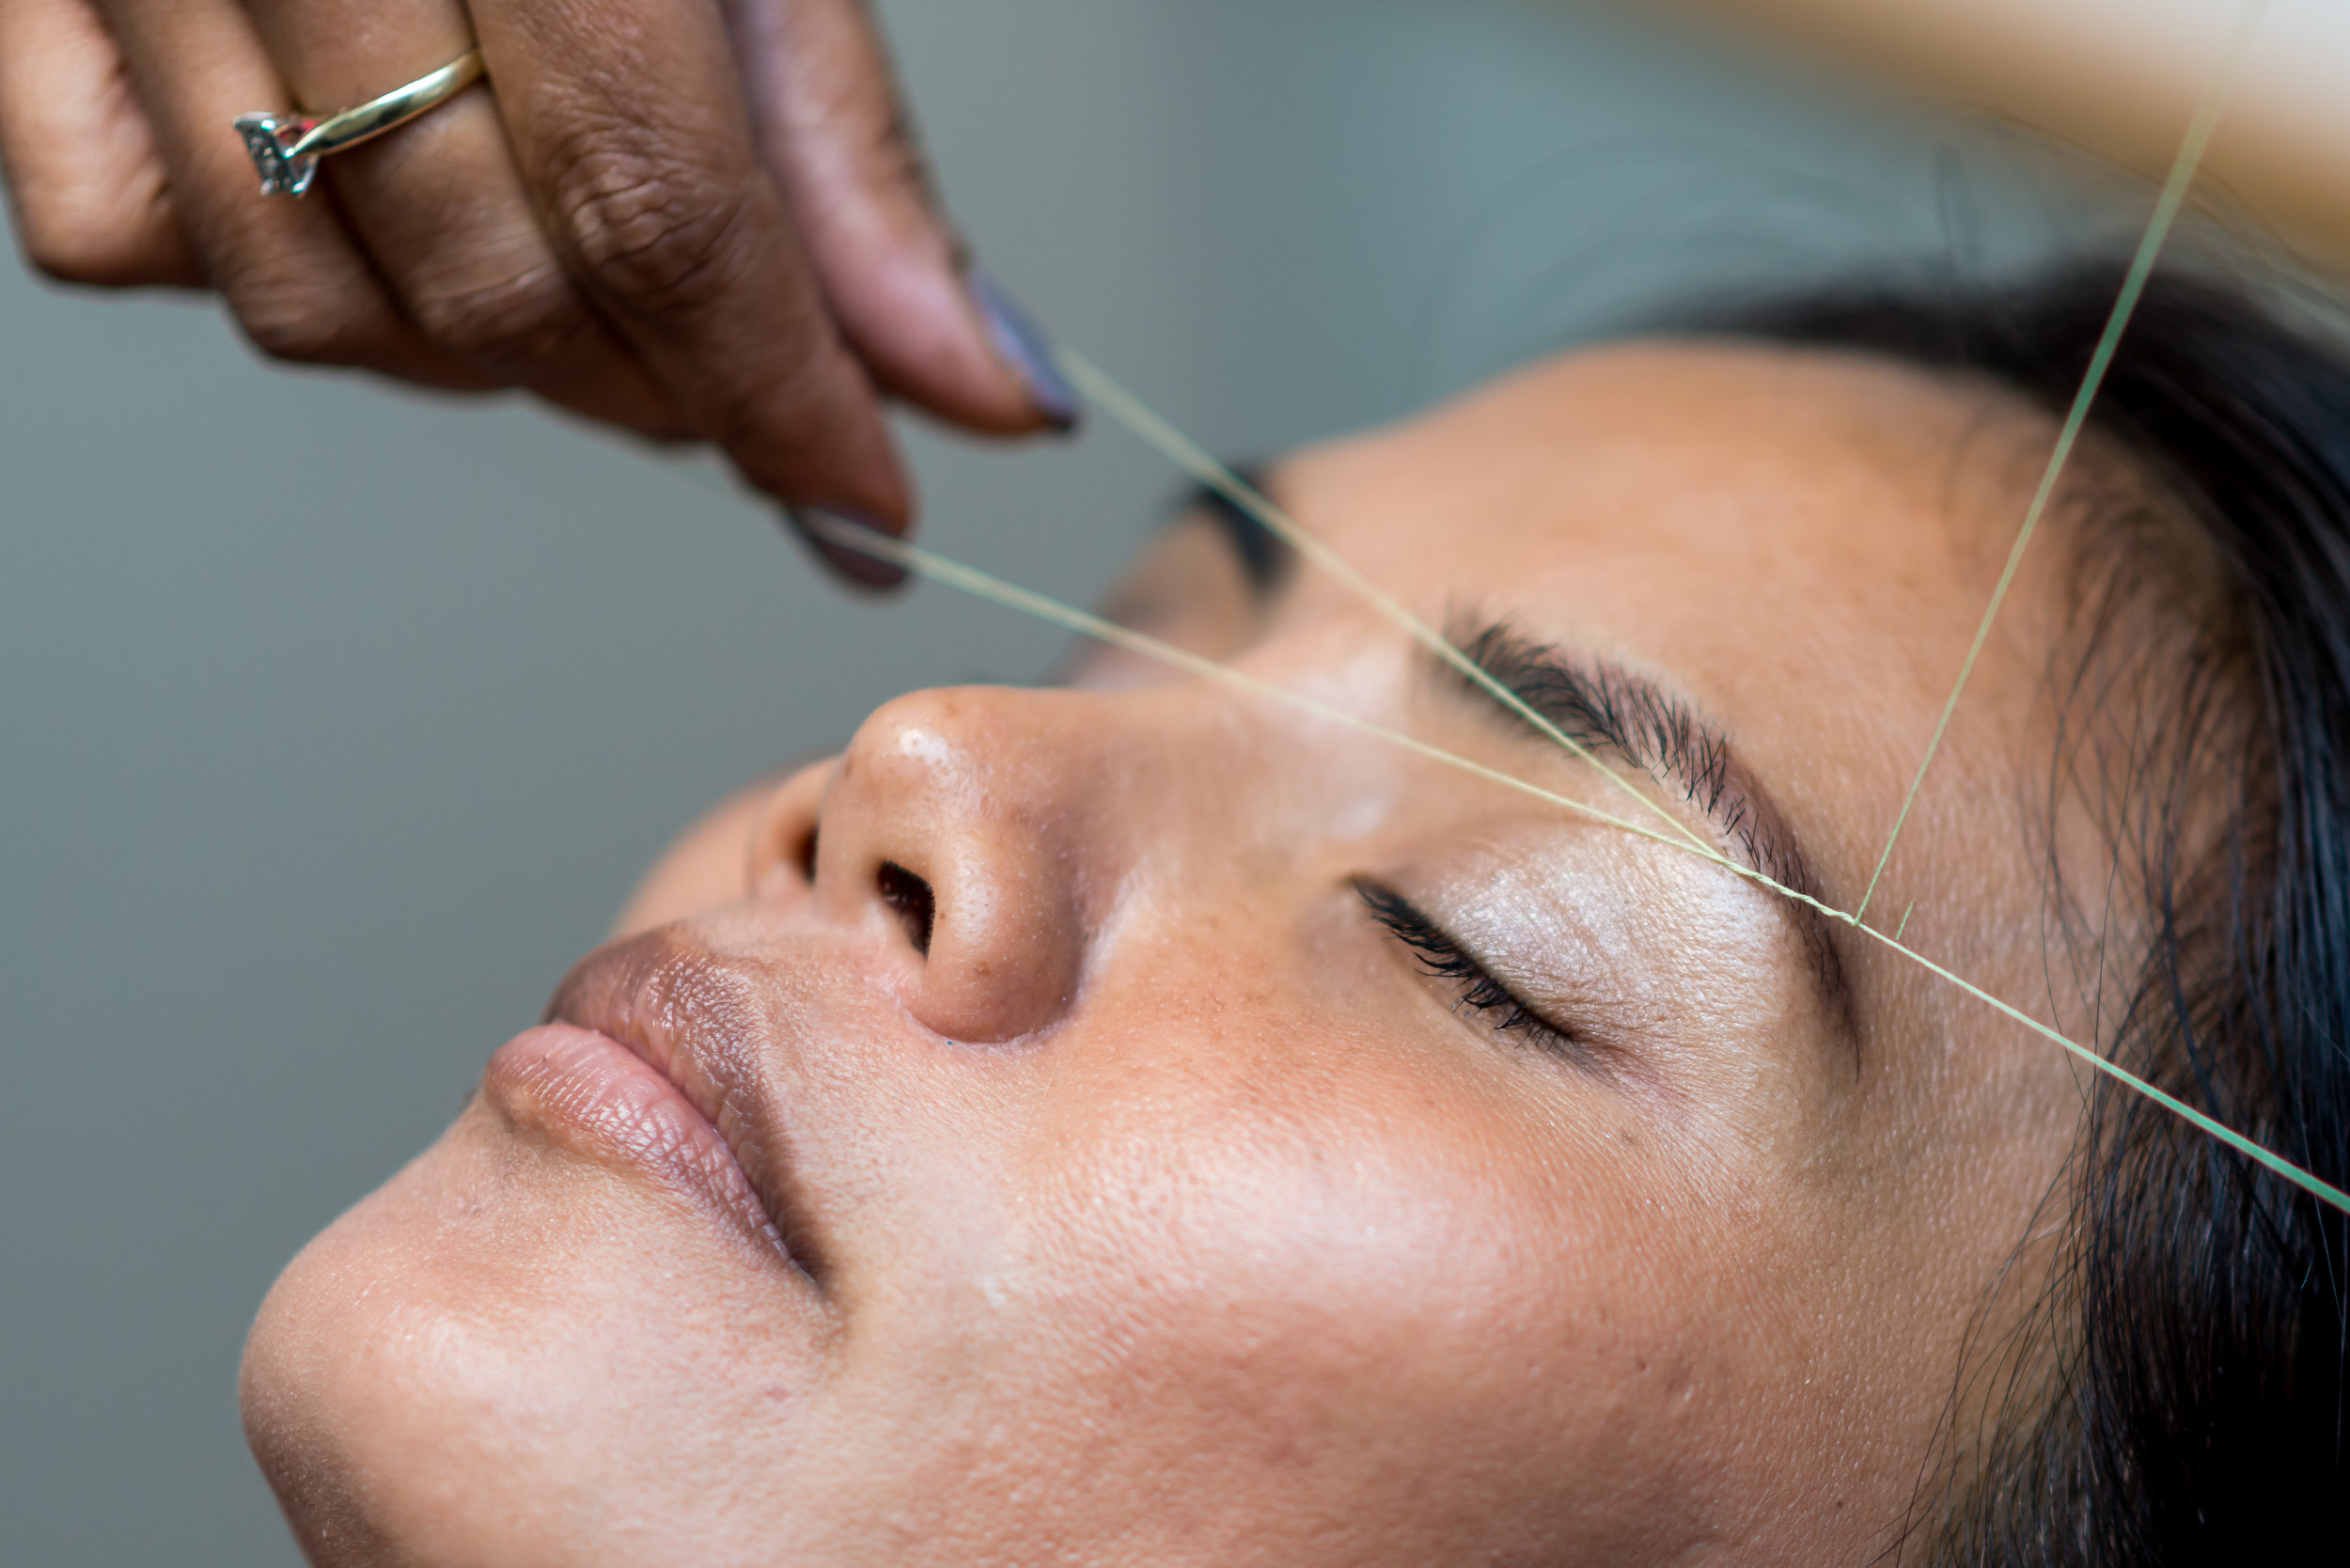 Waxing/threading - Eyebrow wax $10 +Lip $8 +Chin $10+Full Face $30+THREADING BY GOWHER ALSO AVALIABLE.